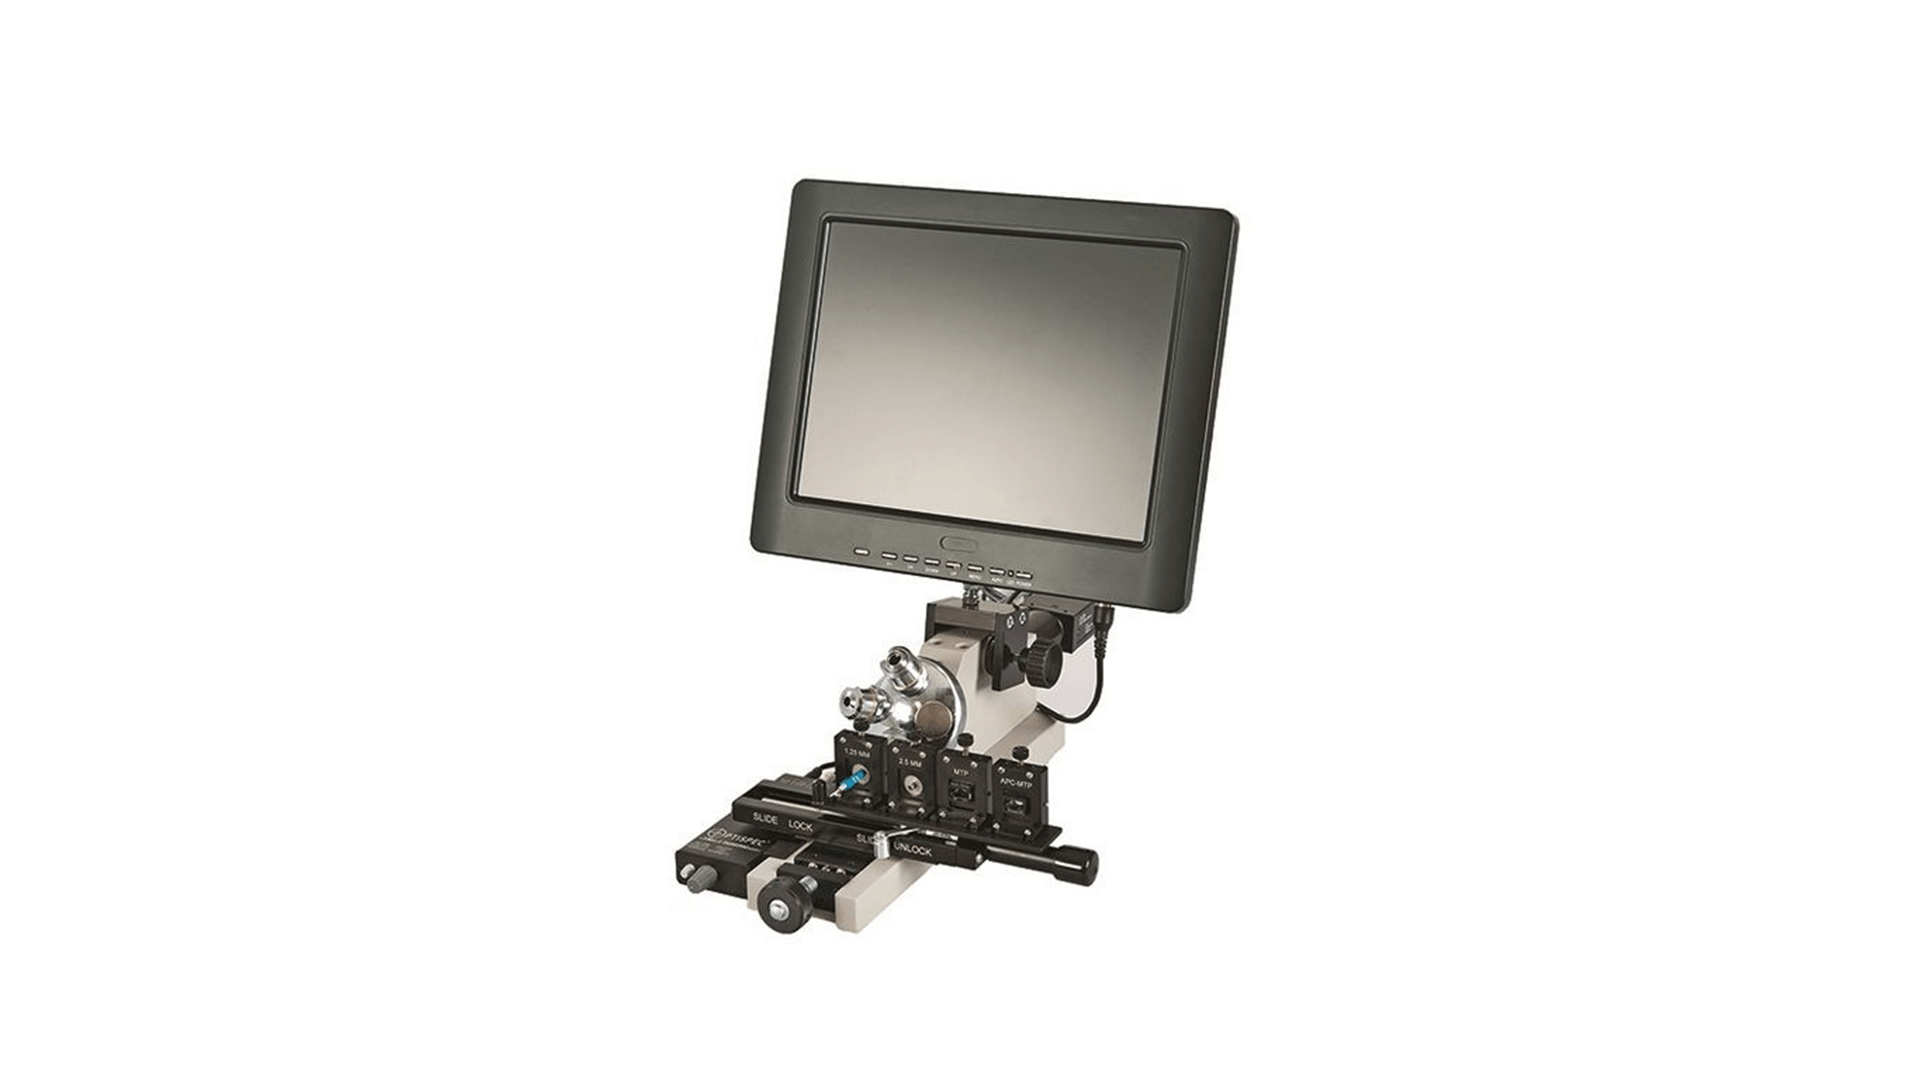 DE2503 Bench Fiber Microscope by Domaille Engineering